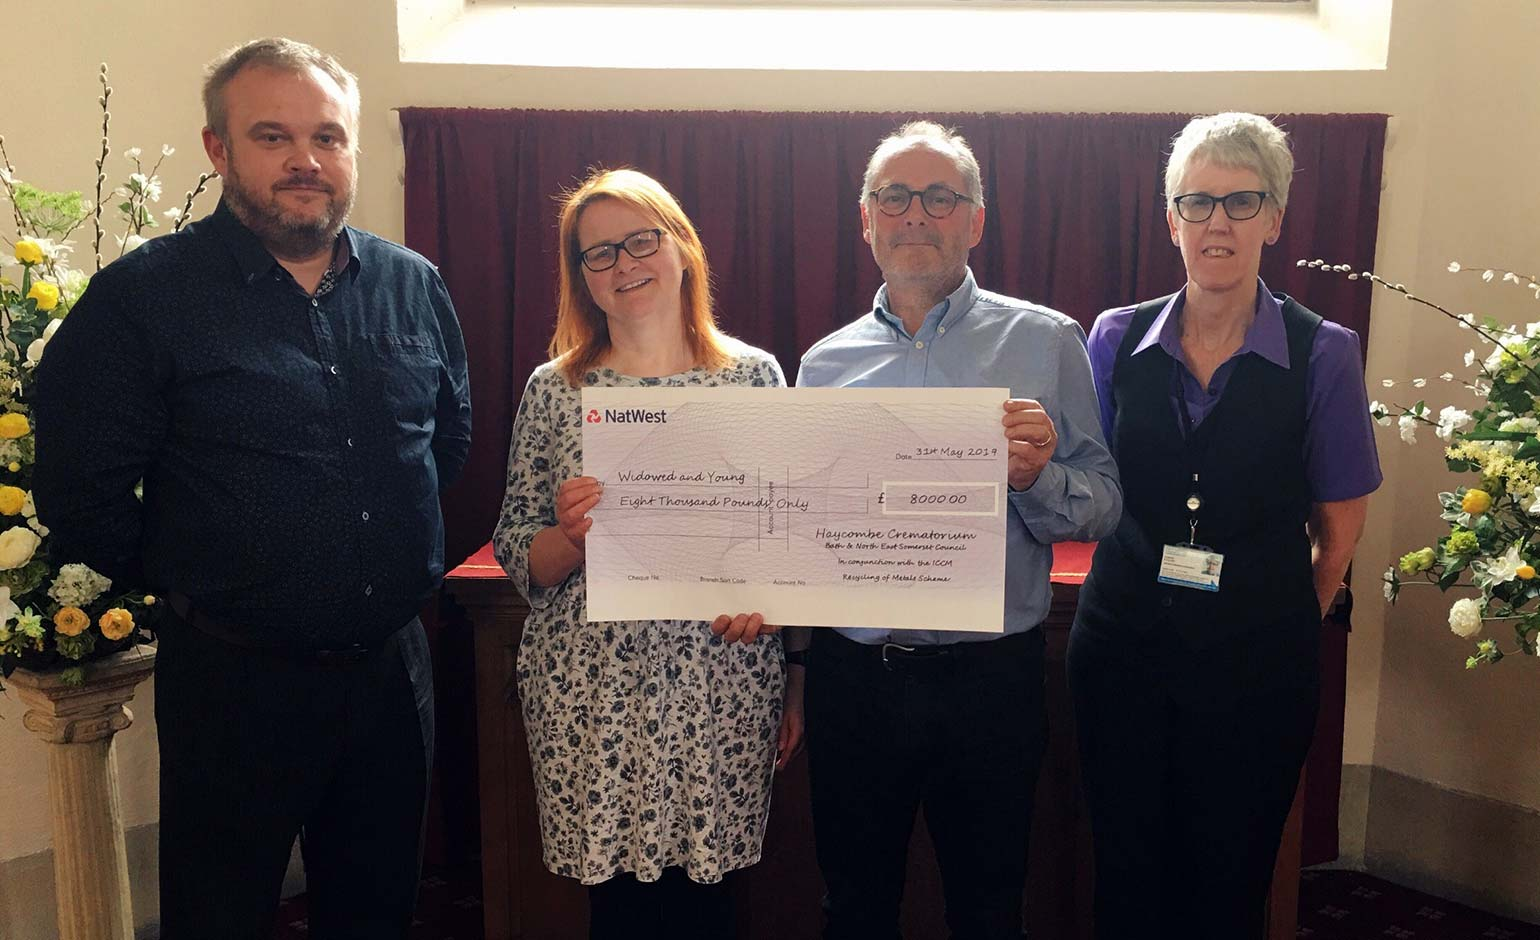 Bereavement charity receives £8k thanks to Haycombe Crematorium recycling | Bath Echo